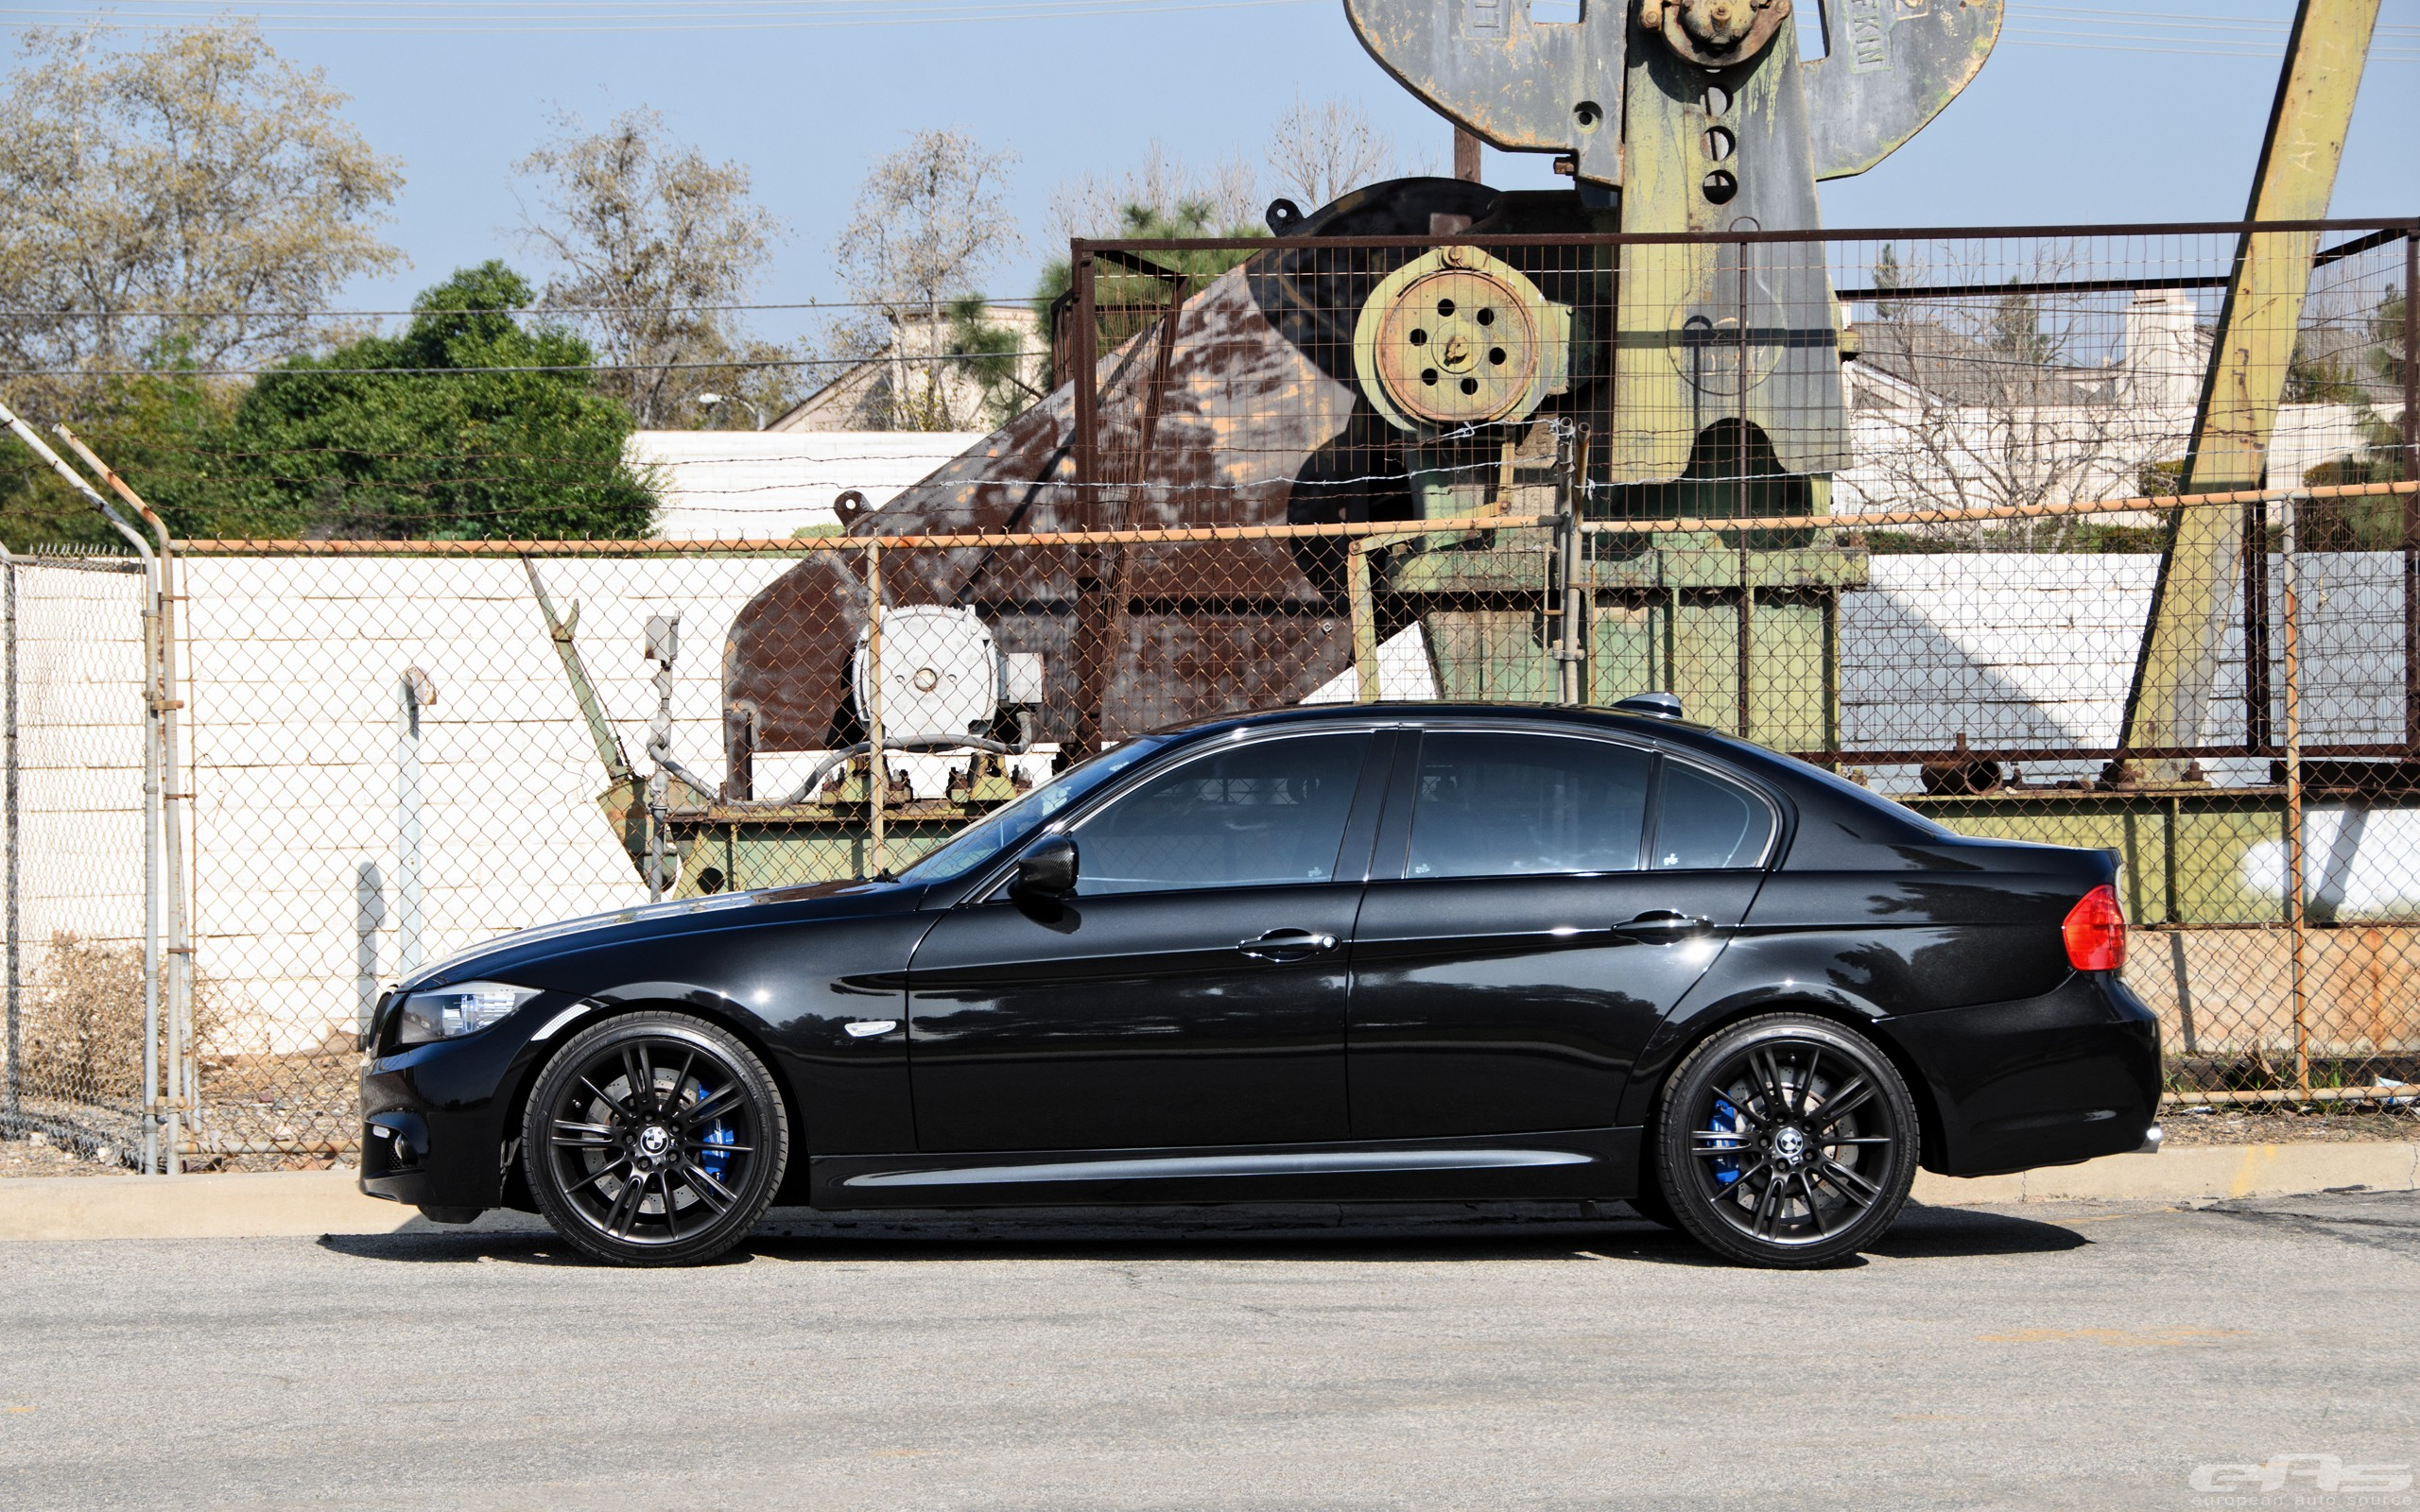 This Bmw 335i Is The Definition Of A Sleeper Autoevolution